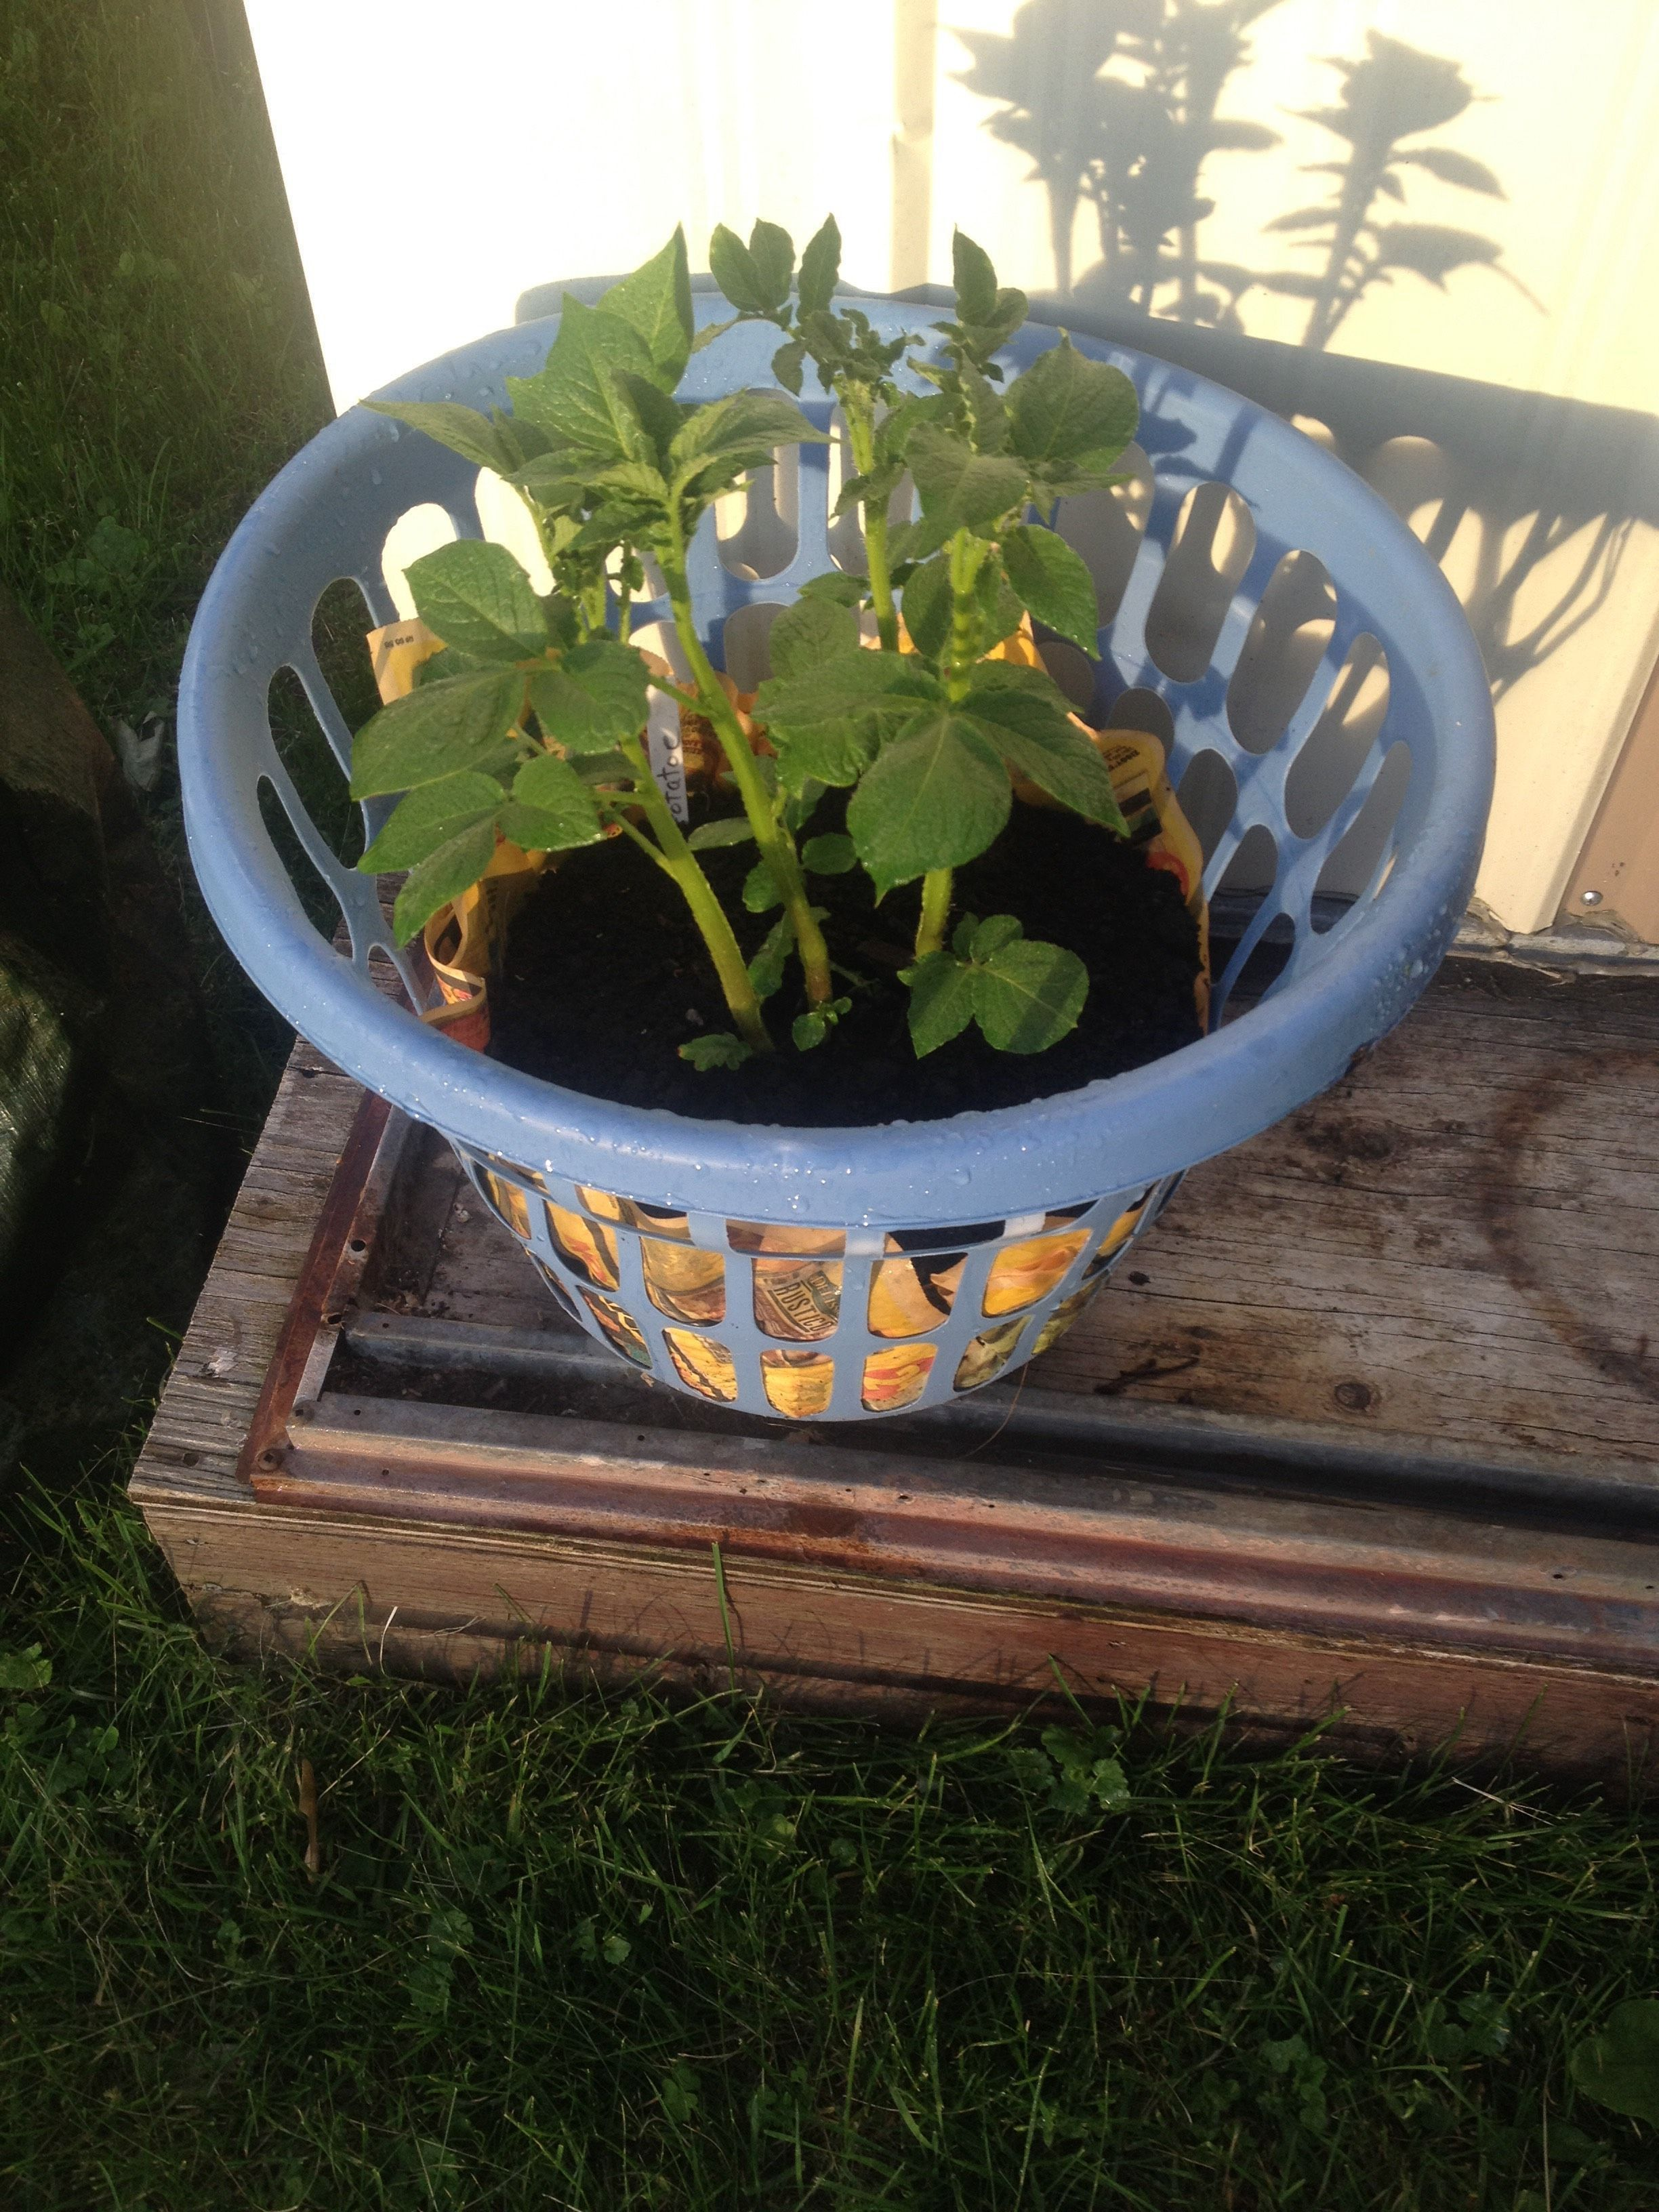 Growing Potatoes In A Laundry Basket Steemit